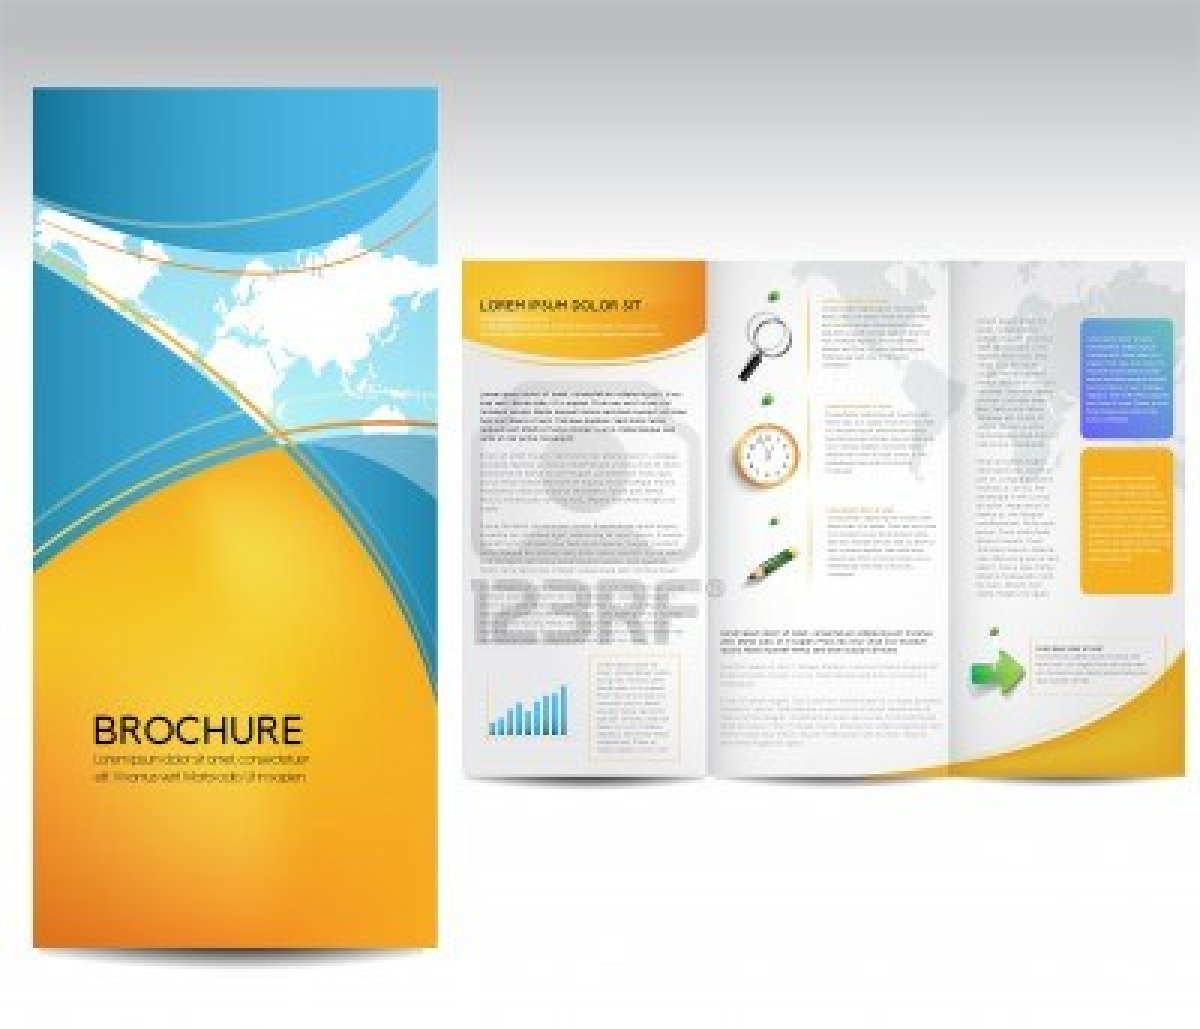 For Brochure U0026gt; Brochure Zafira Pics Brochure Templates Free Download